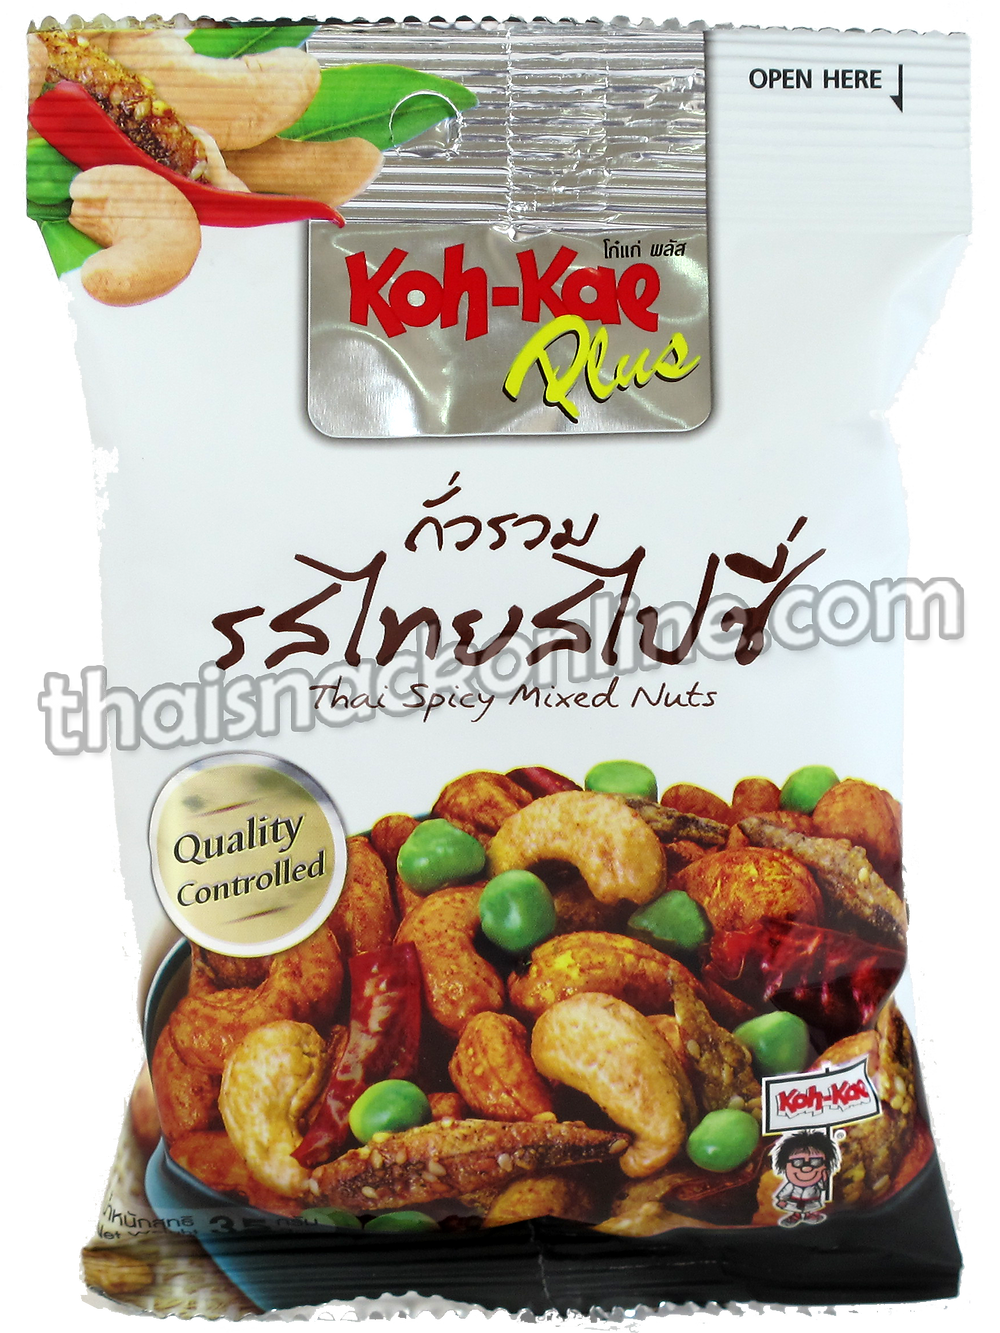 Koh Kae - Thai Spicy Mixed Nuts